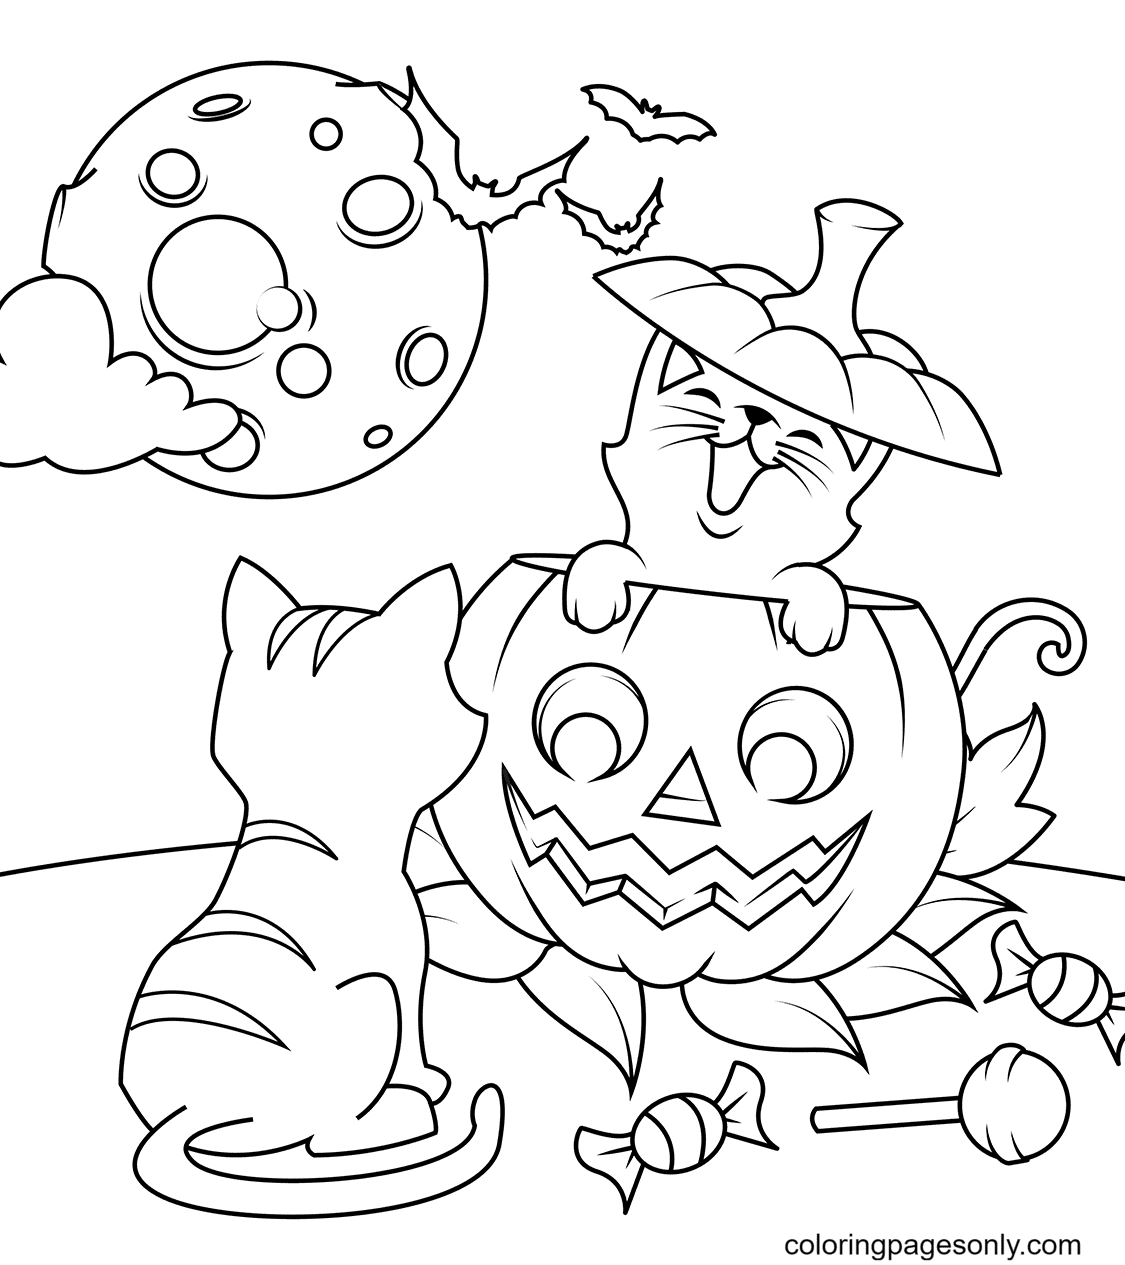 Halloween Cats and Jack O'Lantern Coloring Page